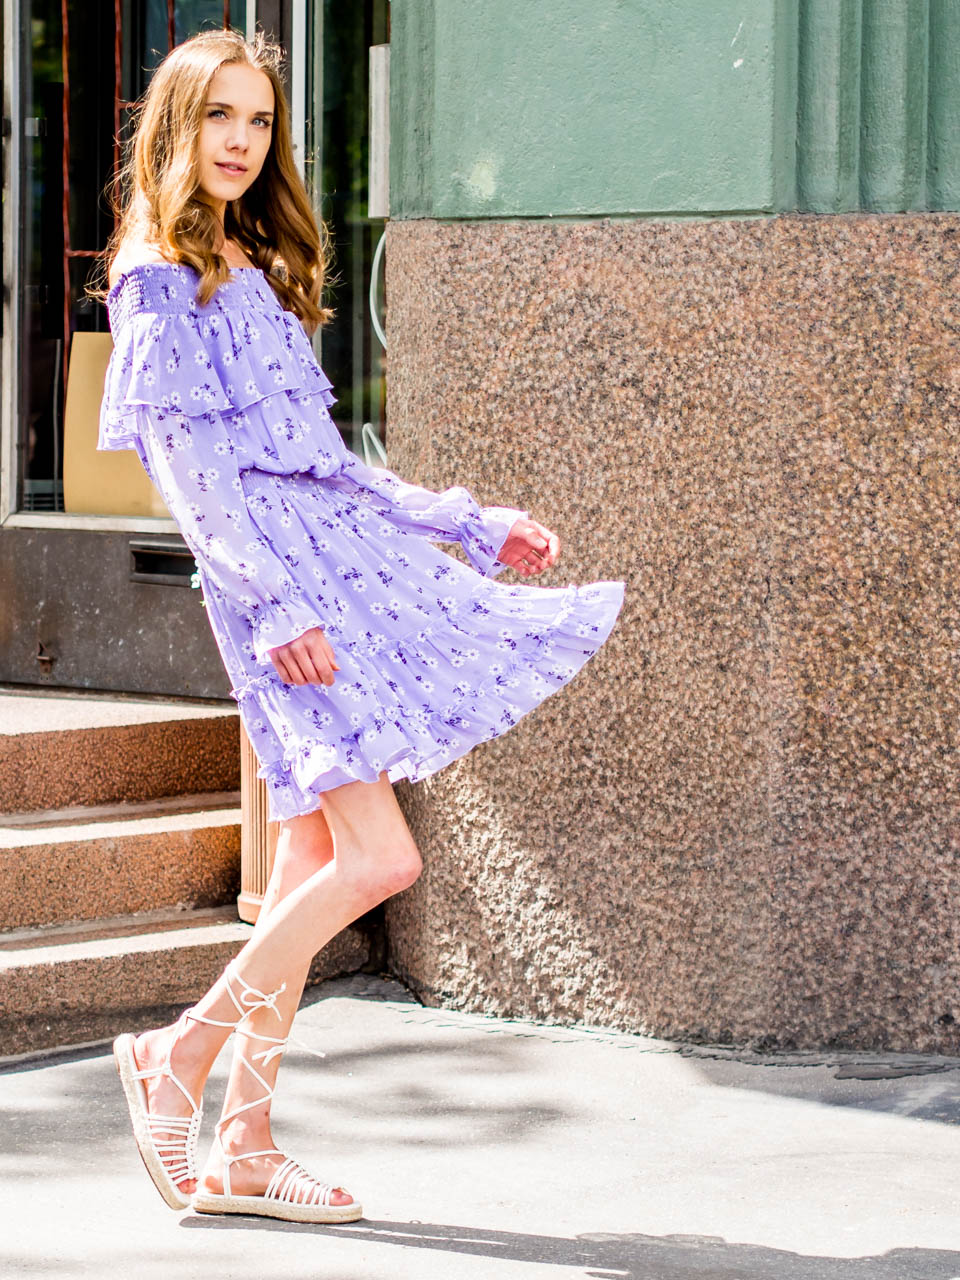 fashion-blogger-summer-outfit-inspiration-floral-dress-bikbok-kesämekko-kukkamekko-muotiblogi-inspiraatio